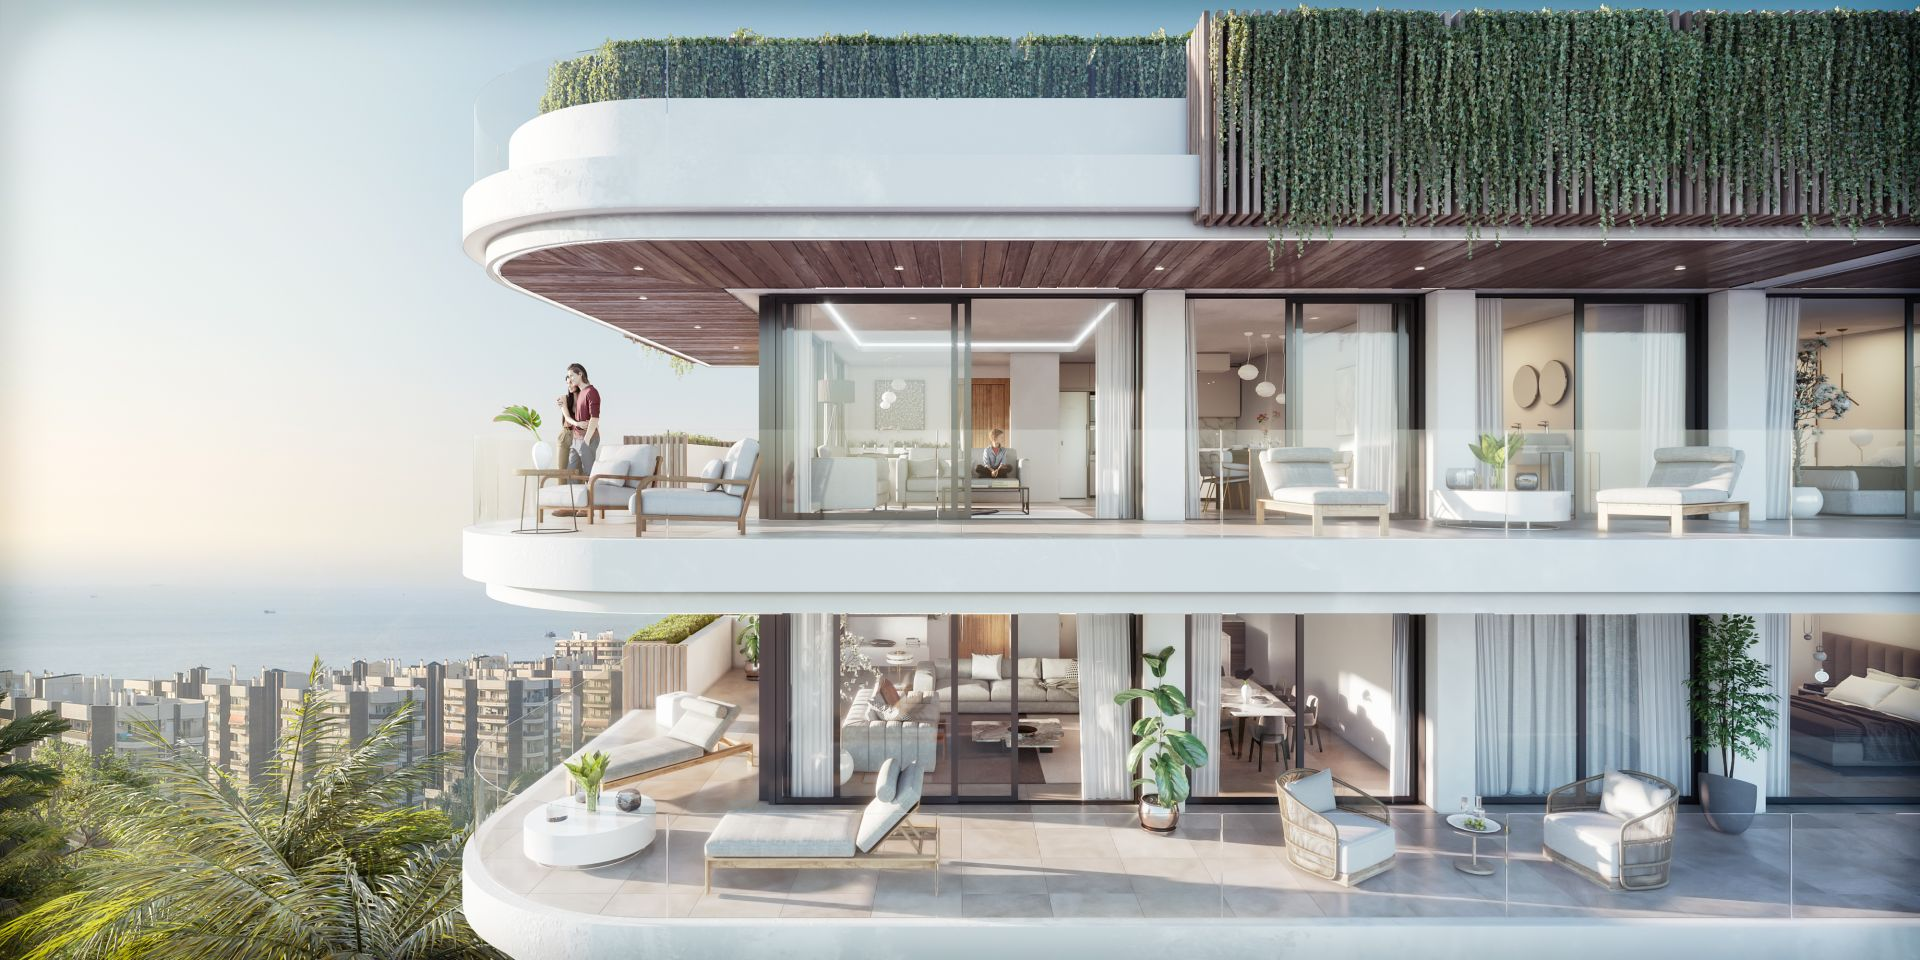 Jade Tower , Fuengirola - New property development in Fuengirola. | Christie's International Real Estate